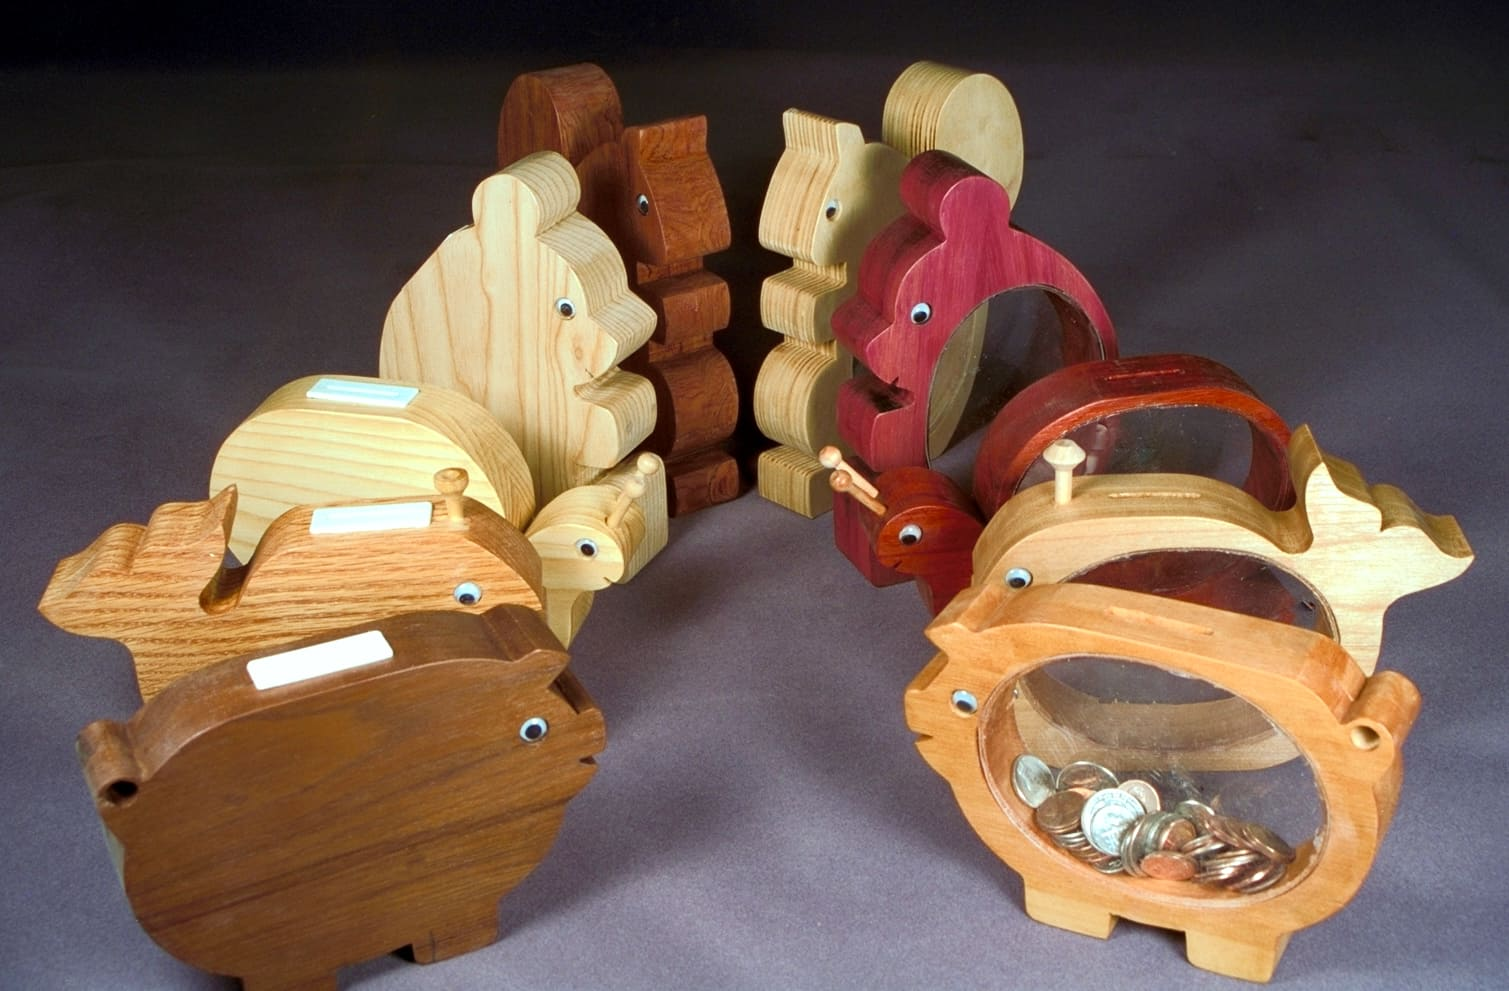 Make easy gifts from woodworking plan. Wood banks encourage savings